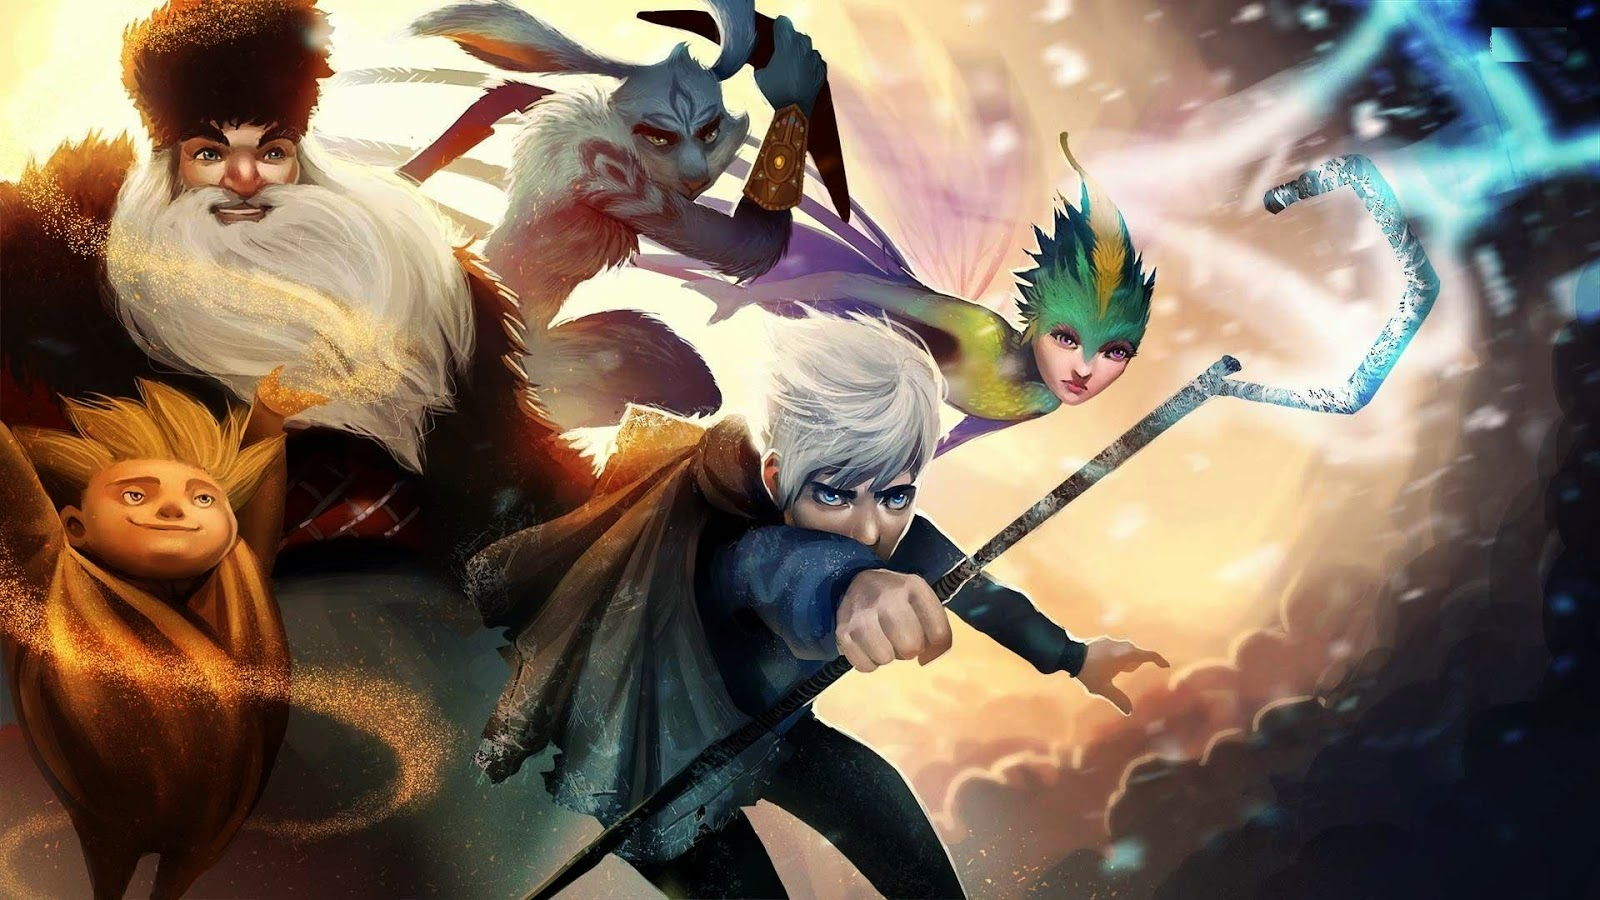 Rise of the guardians hd wallpapers hd pictures hd rise of the guardians wallpaper thecheapjerseys Image collections